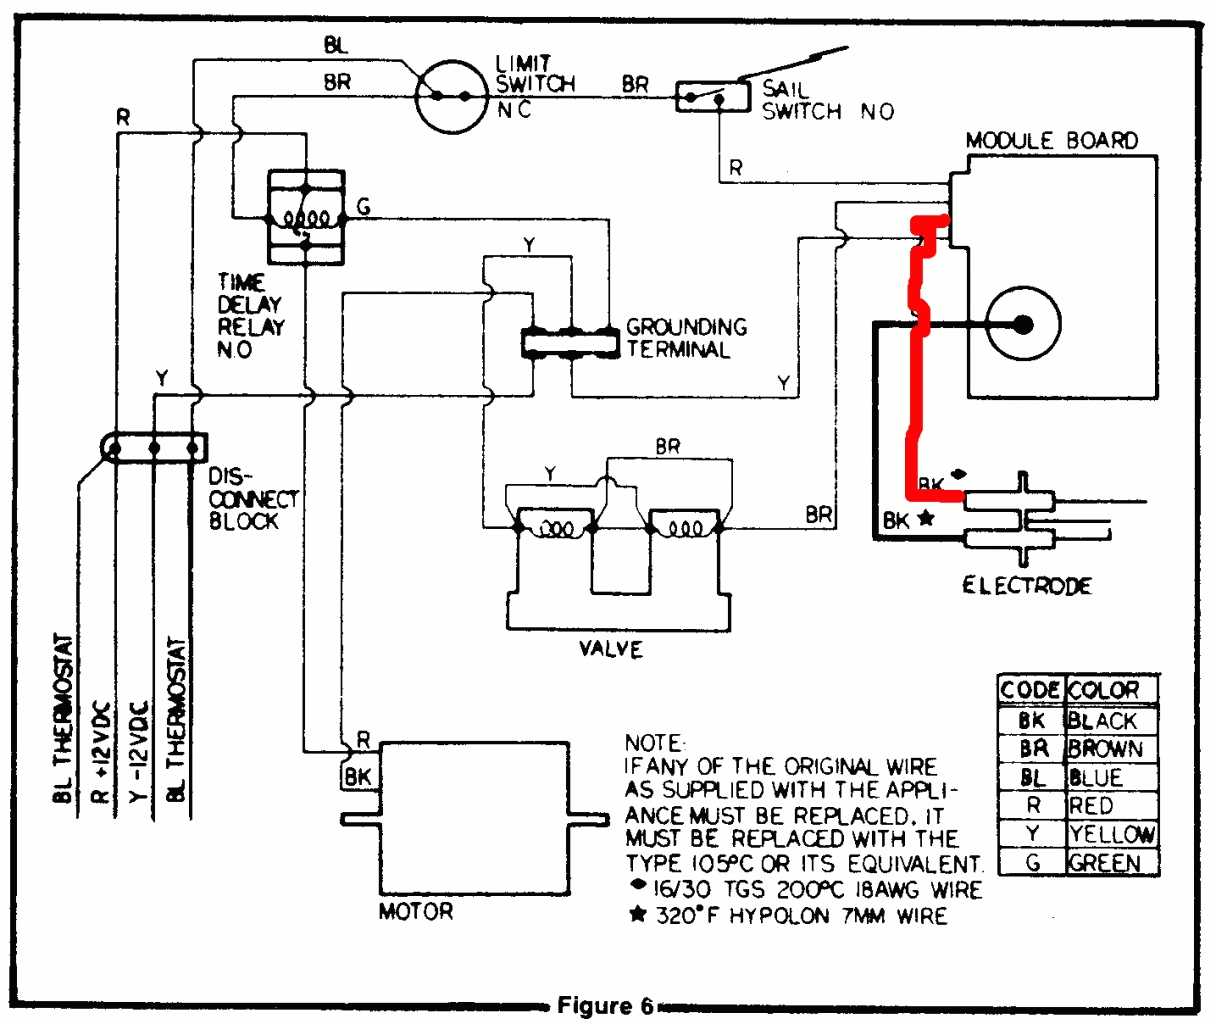 atwood furnace thermostat diagram wiring diagram expertatwood furnace wiring a wiring diagram expert atwood rv furnace